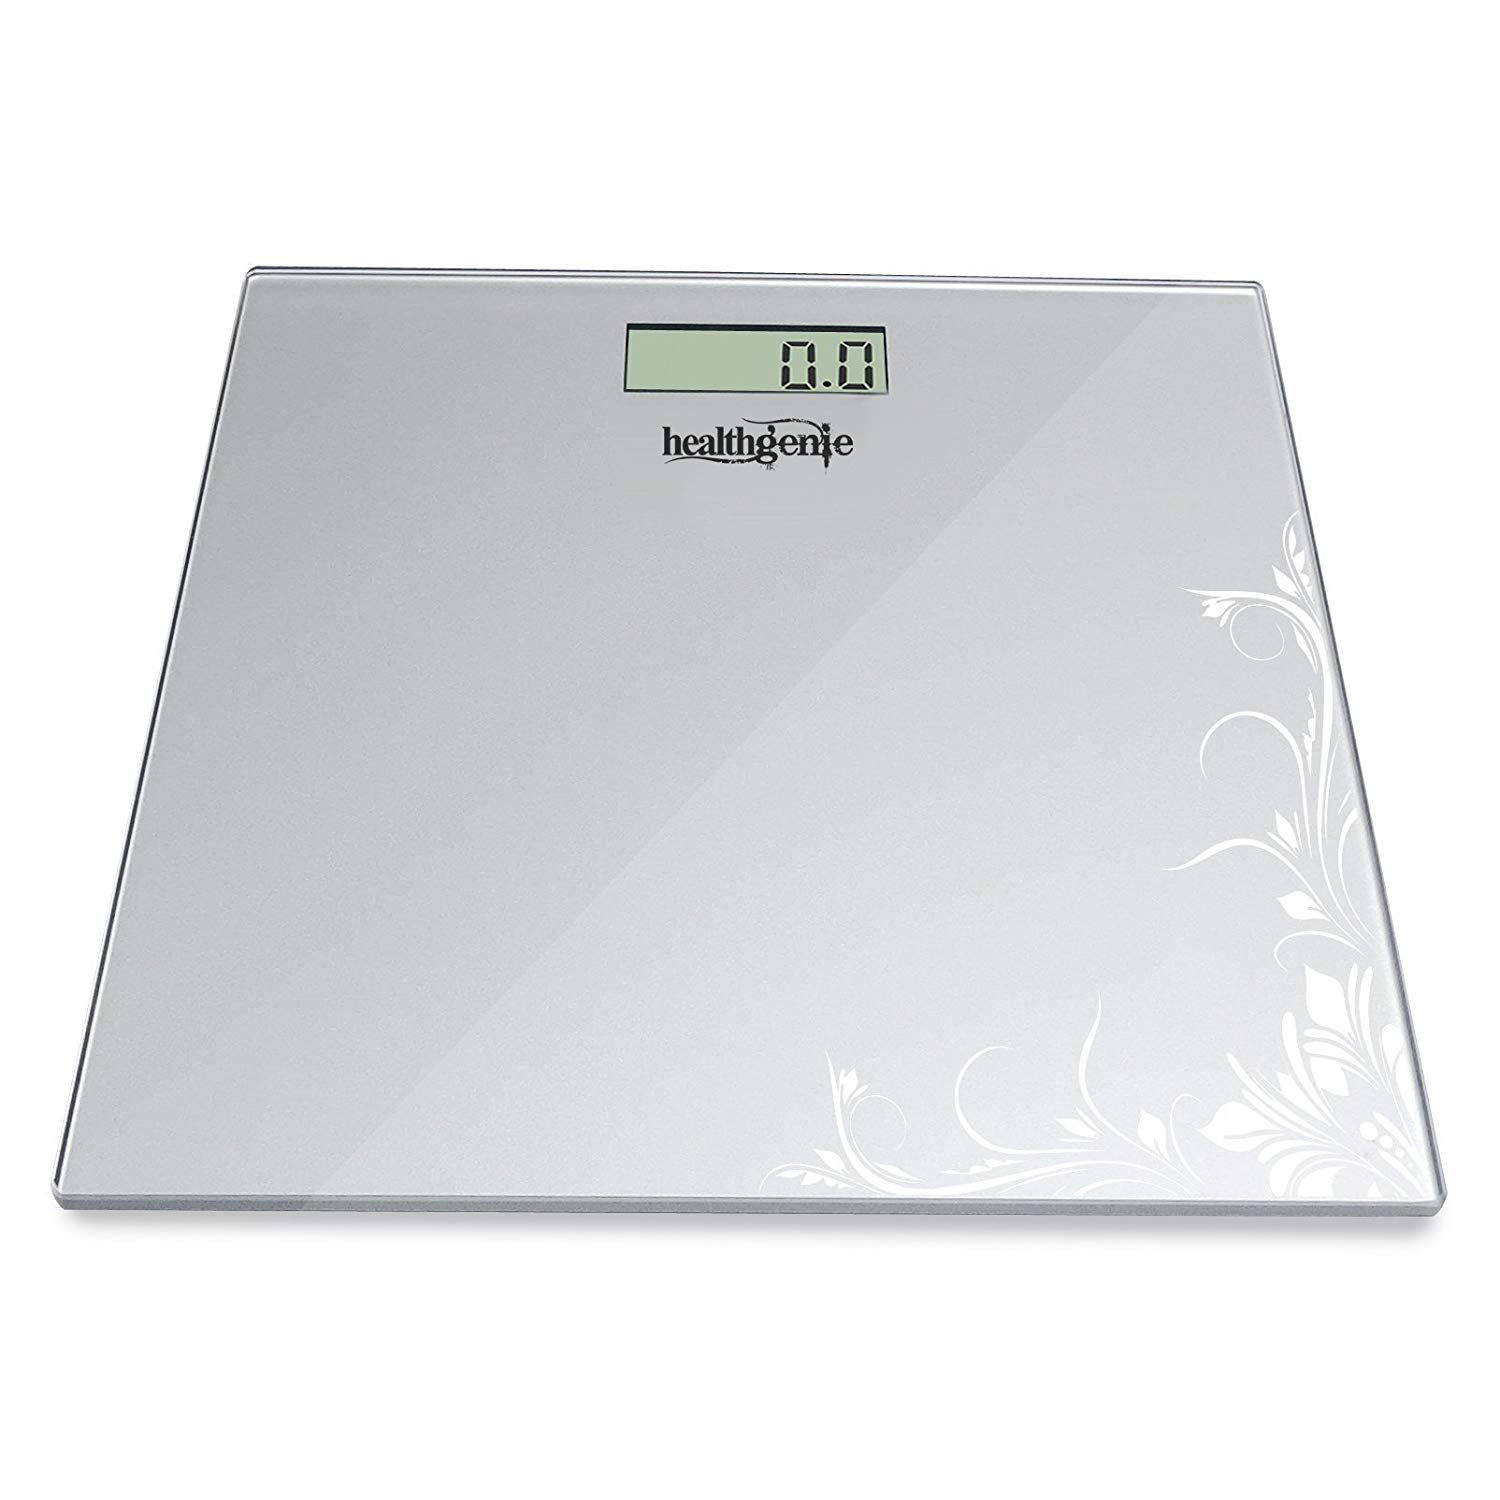 Best Weighing Machines in India (Digital/Analog) 2019 – Top Reviews and Buying Guide